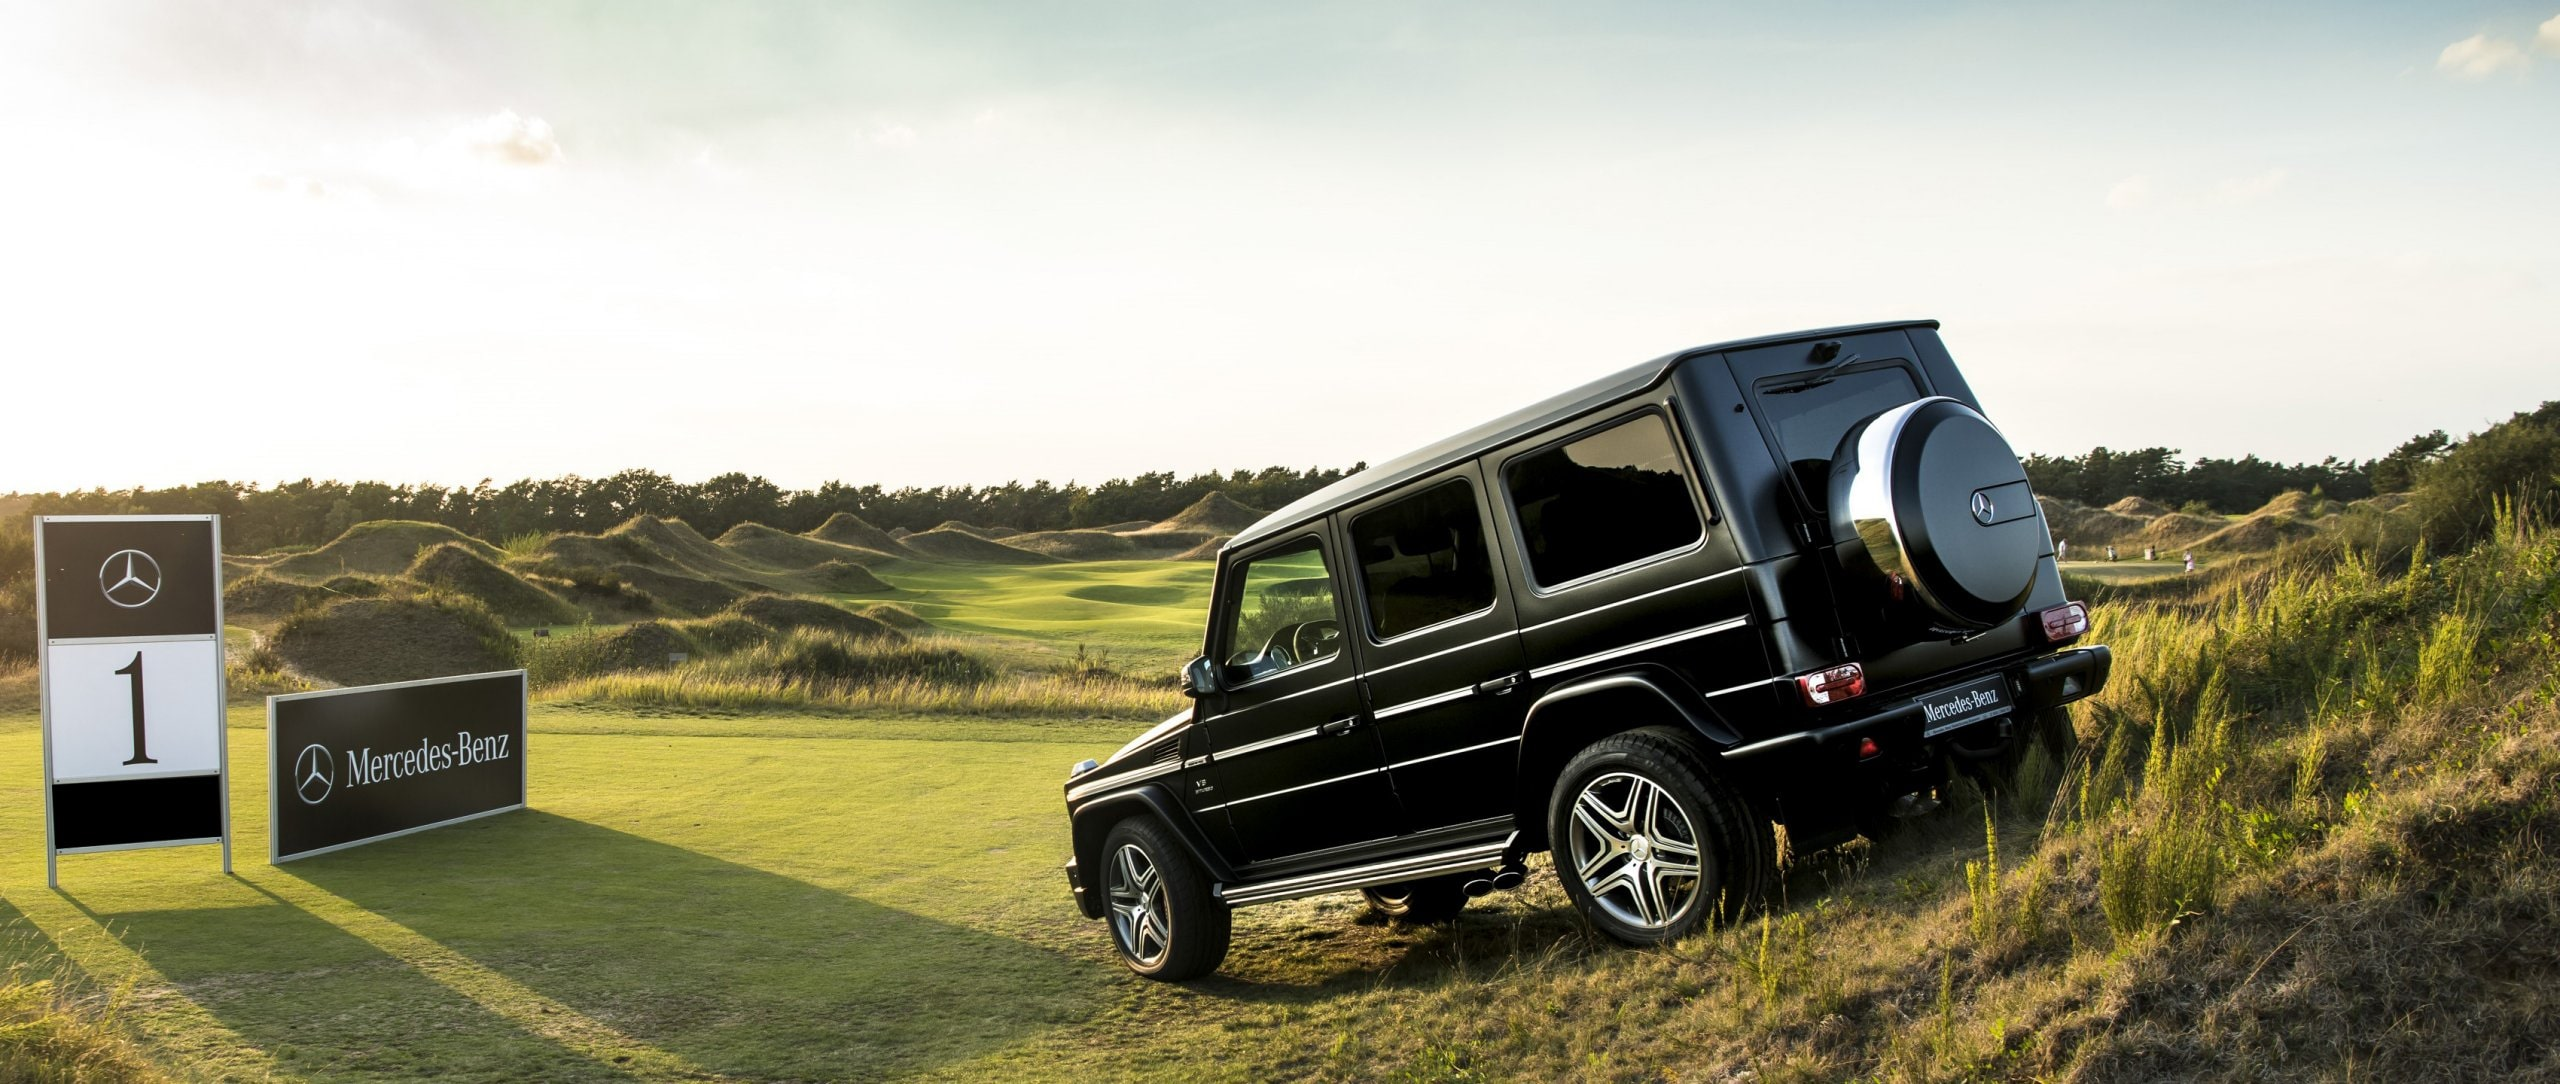 The Mercedes-Benz G-Class (W 463) on the golf course.